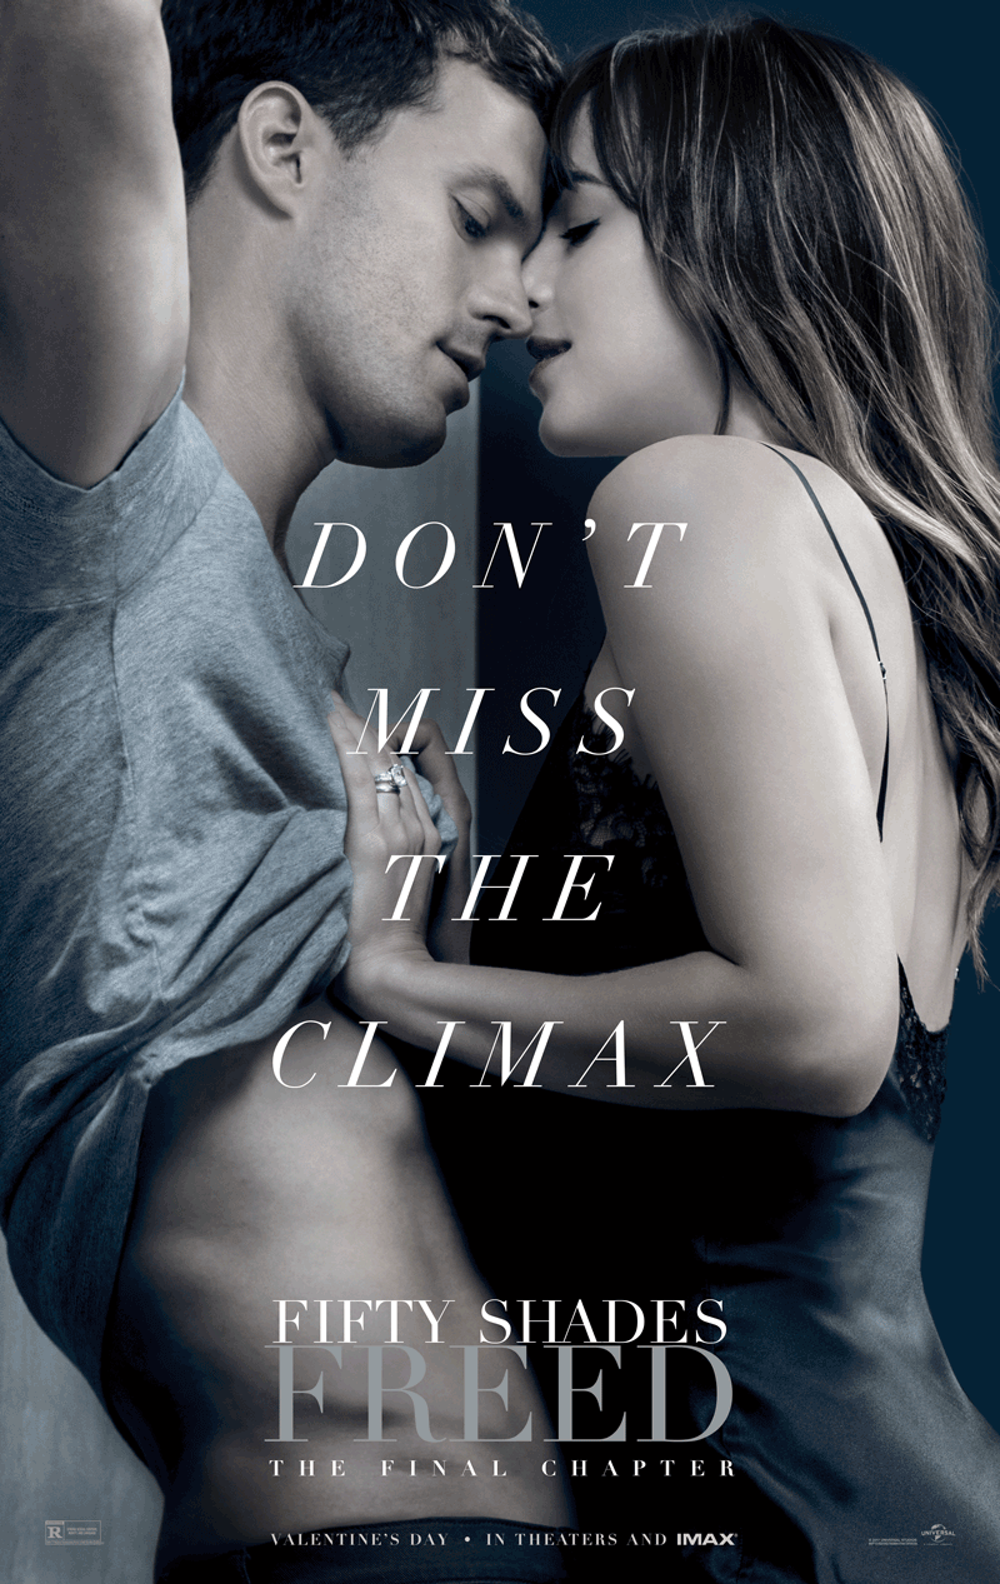 'Fifty Shades Freed' is the third film based on the steamy trilogy that  originated as a self-published work of fan fiction.